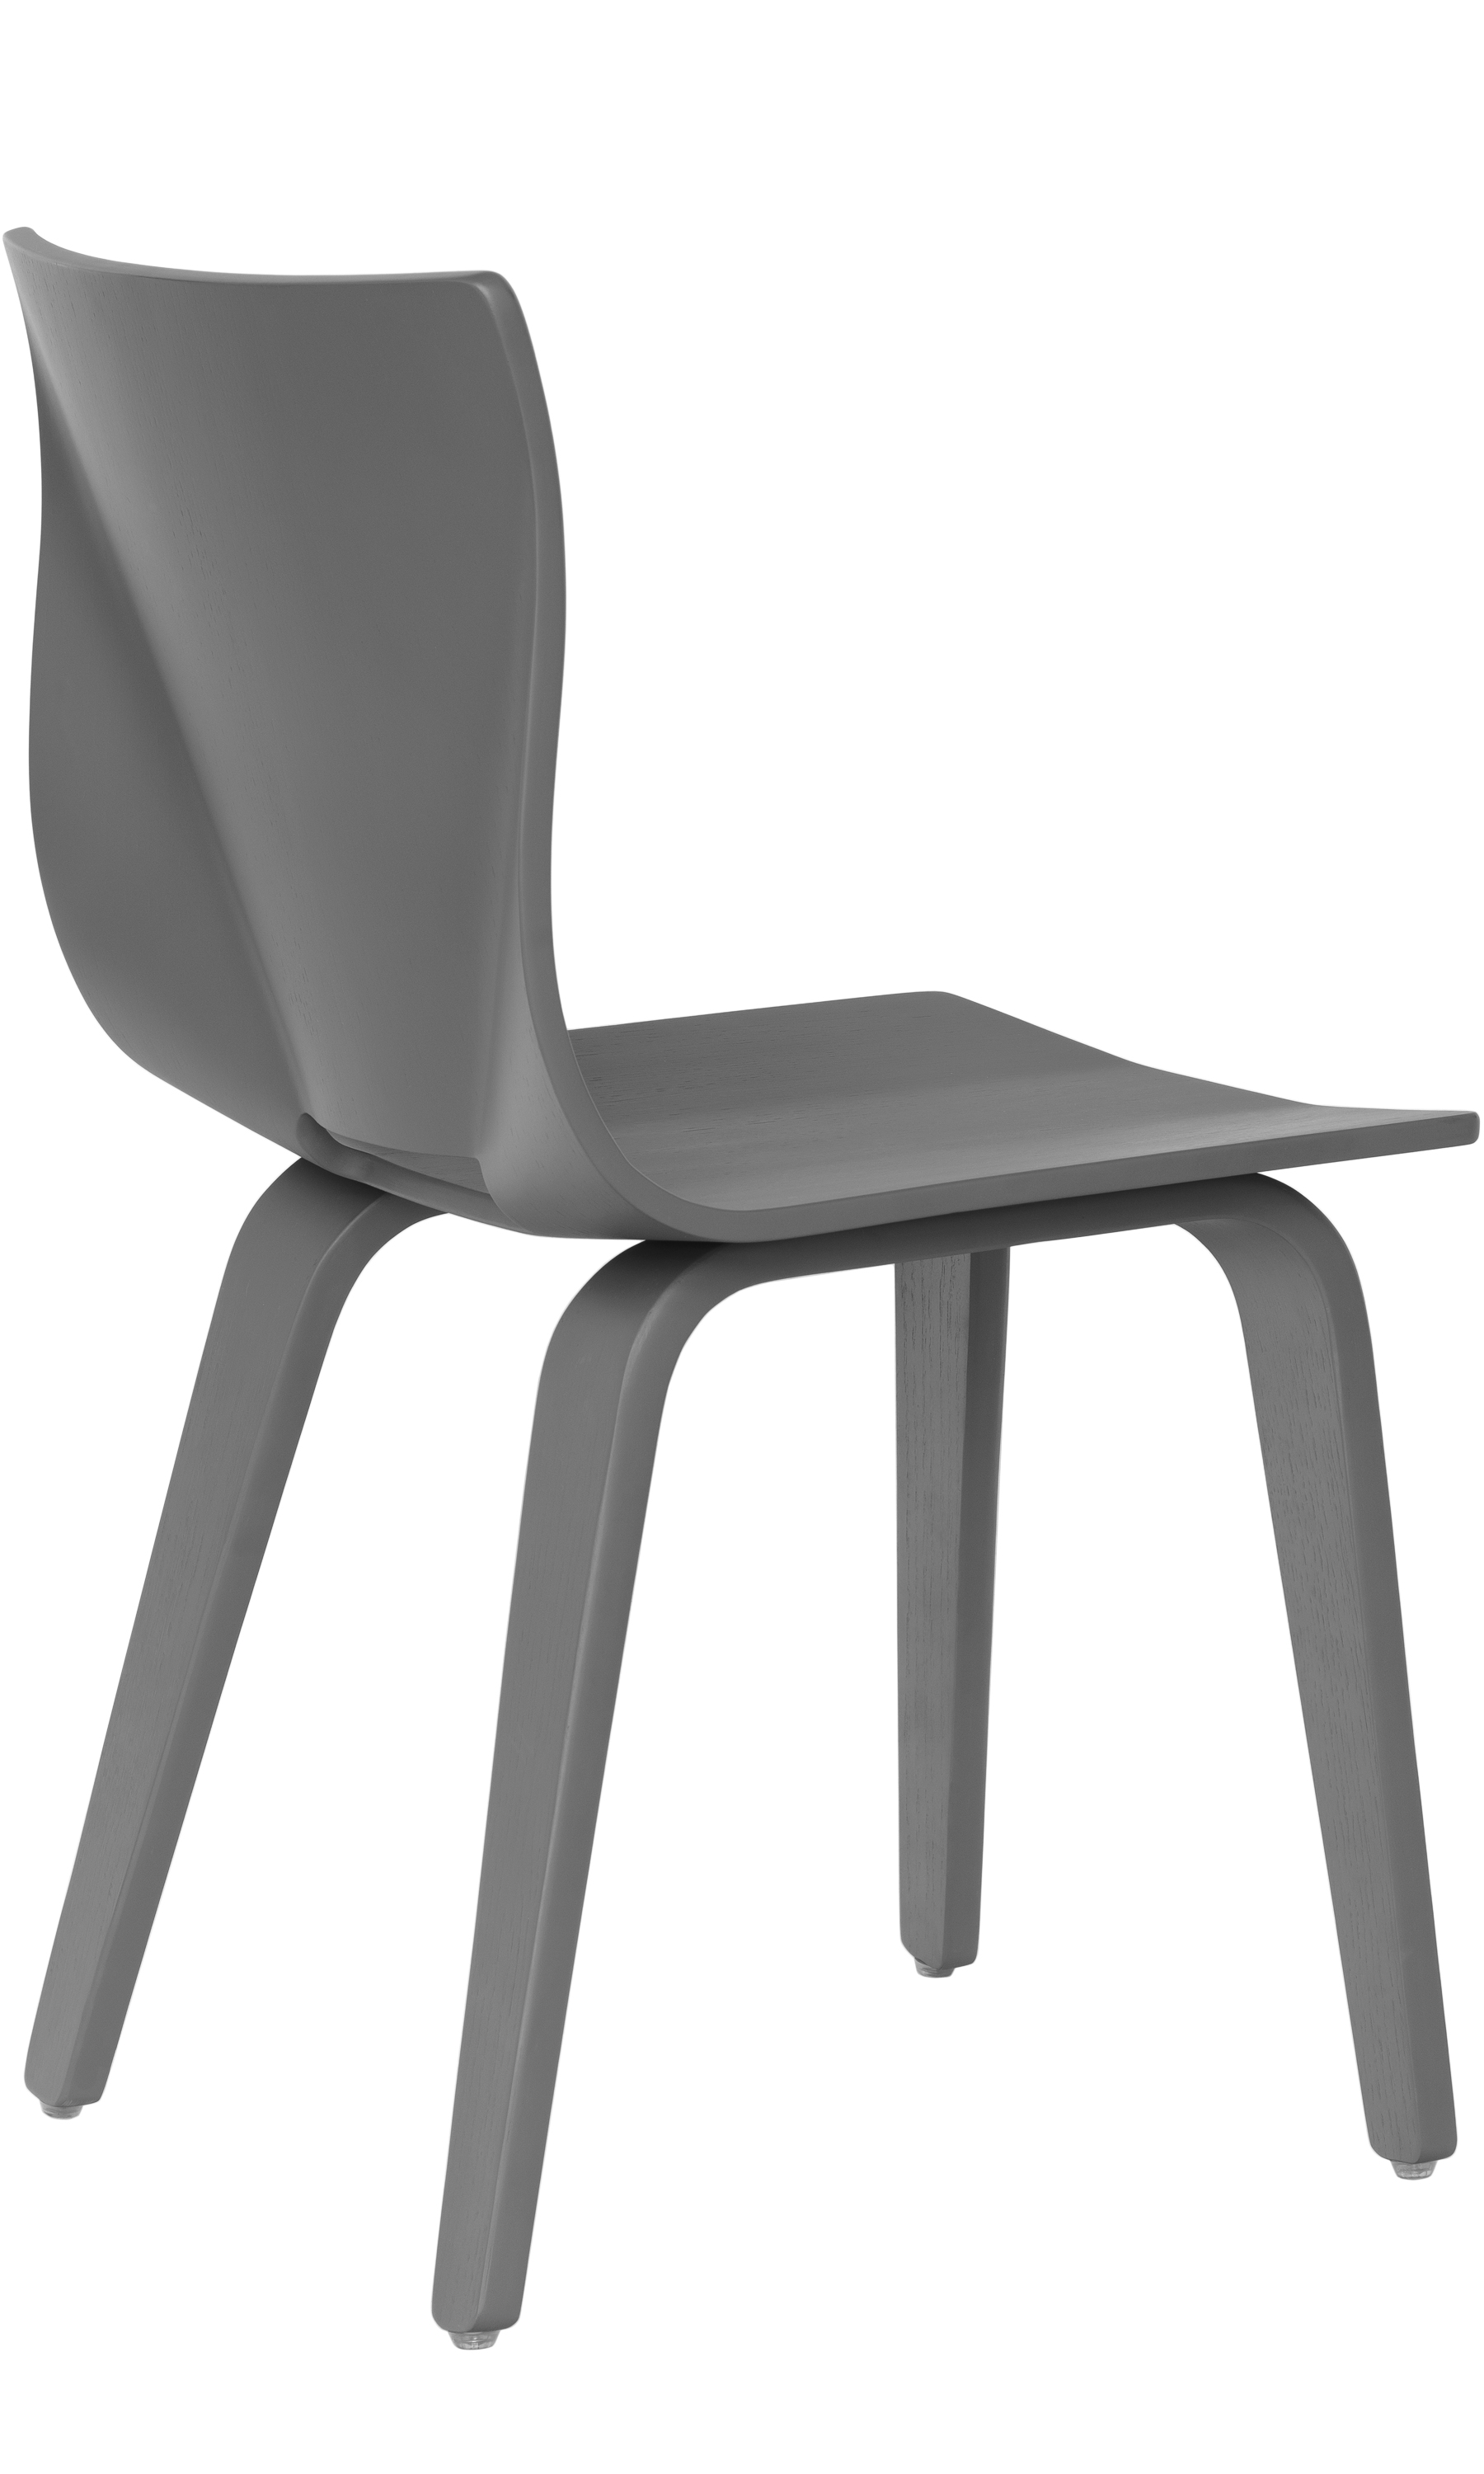 V Chair in grey